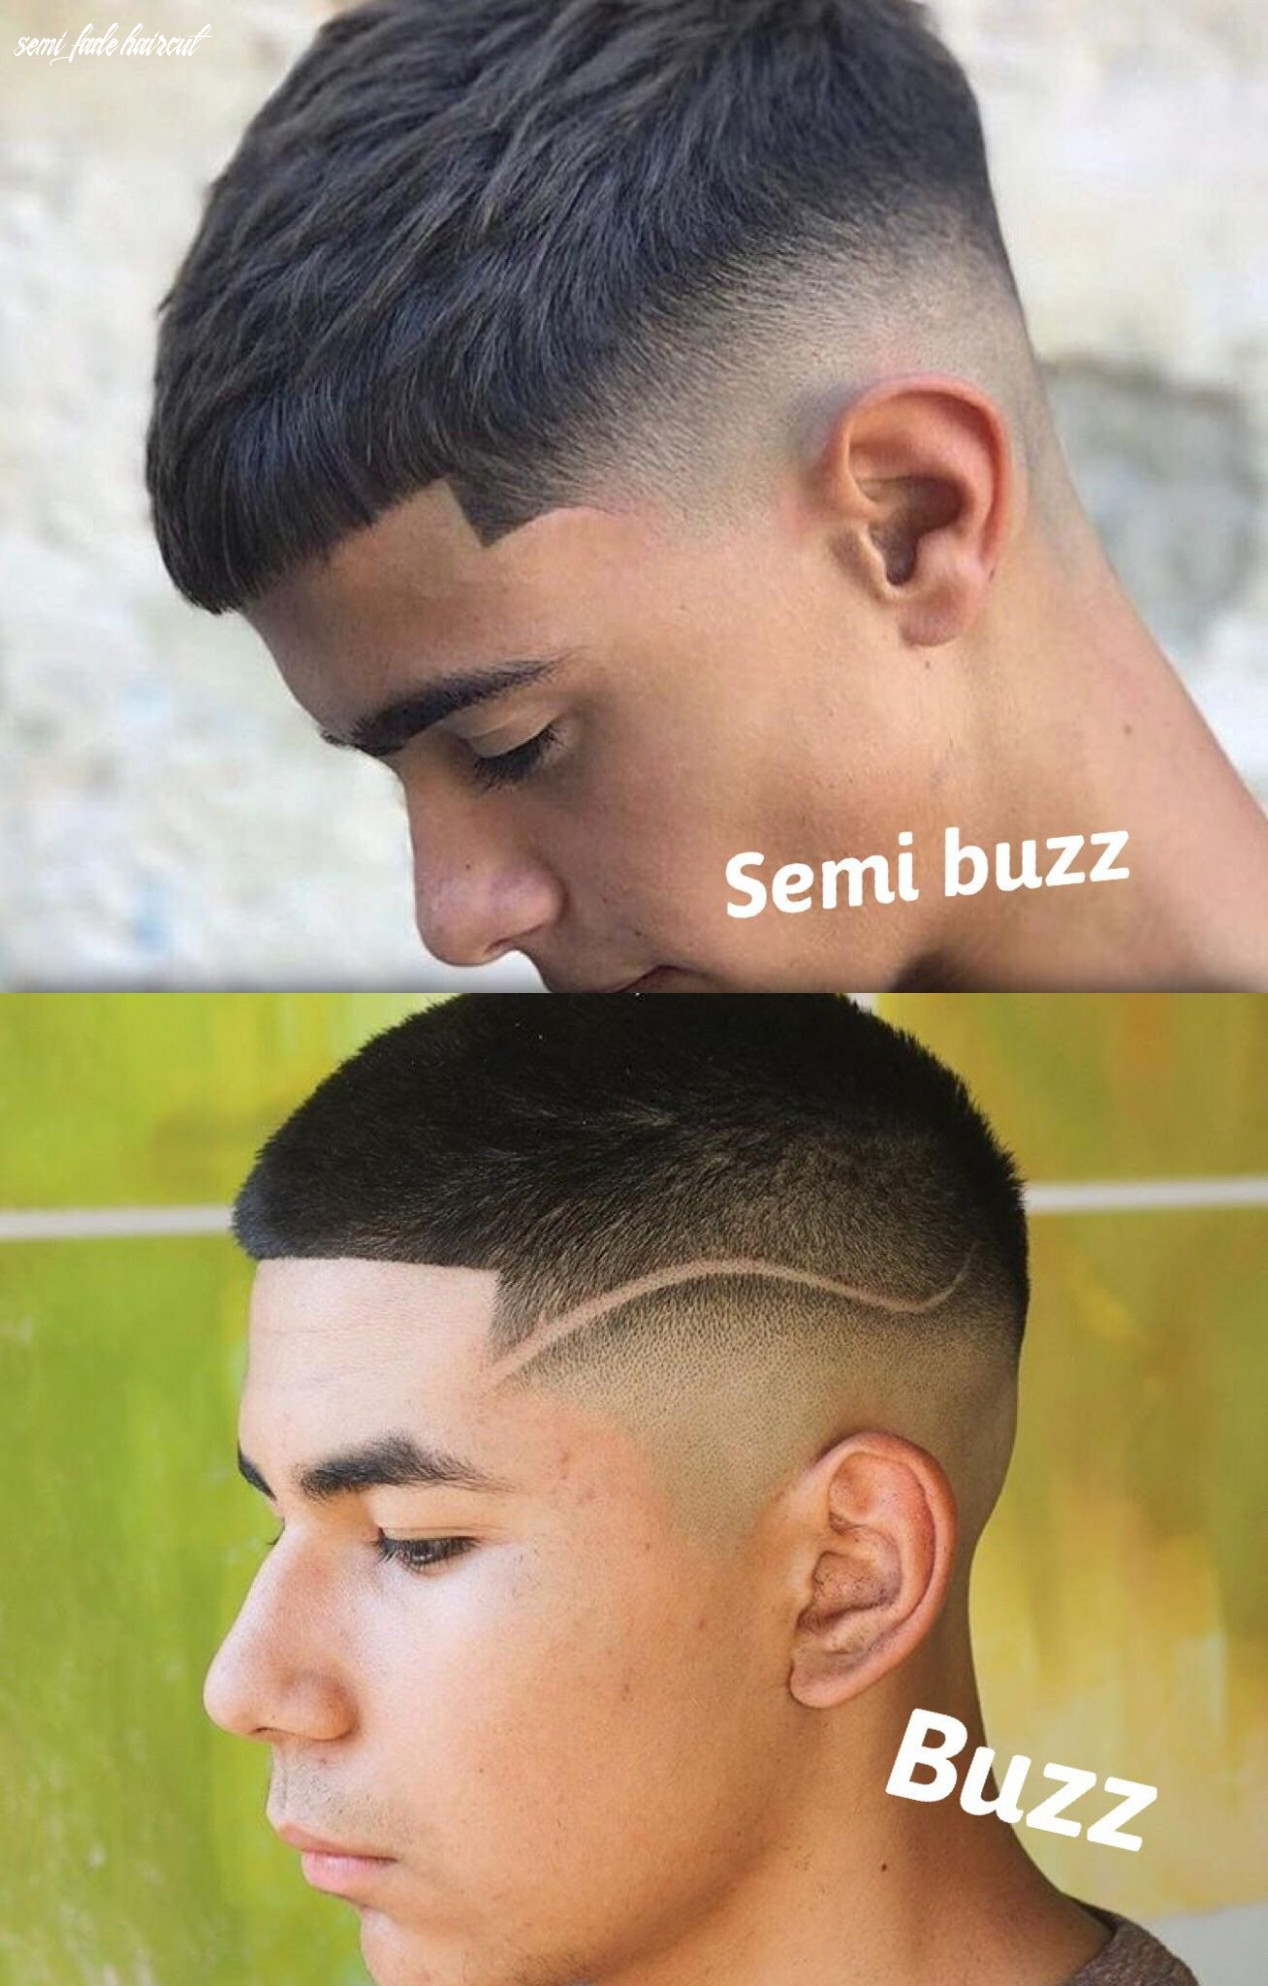 If you were going for one of these haircuts would it be better ...